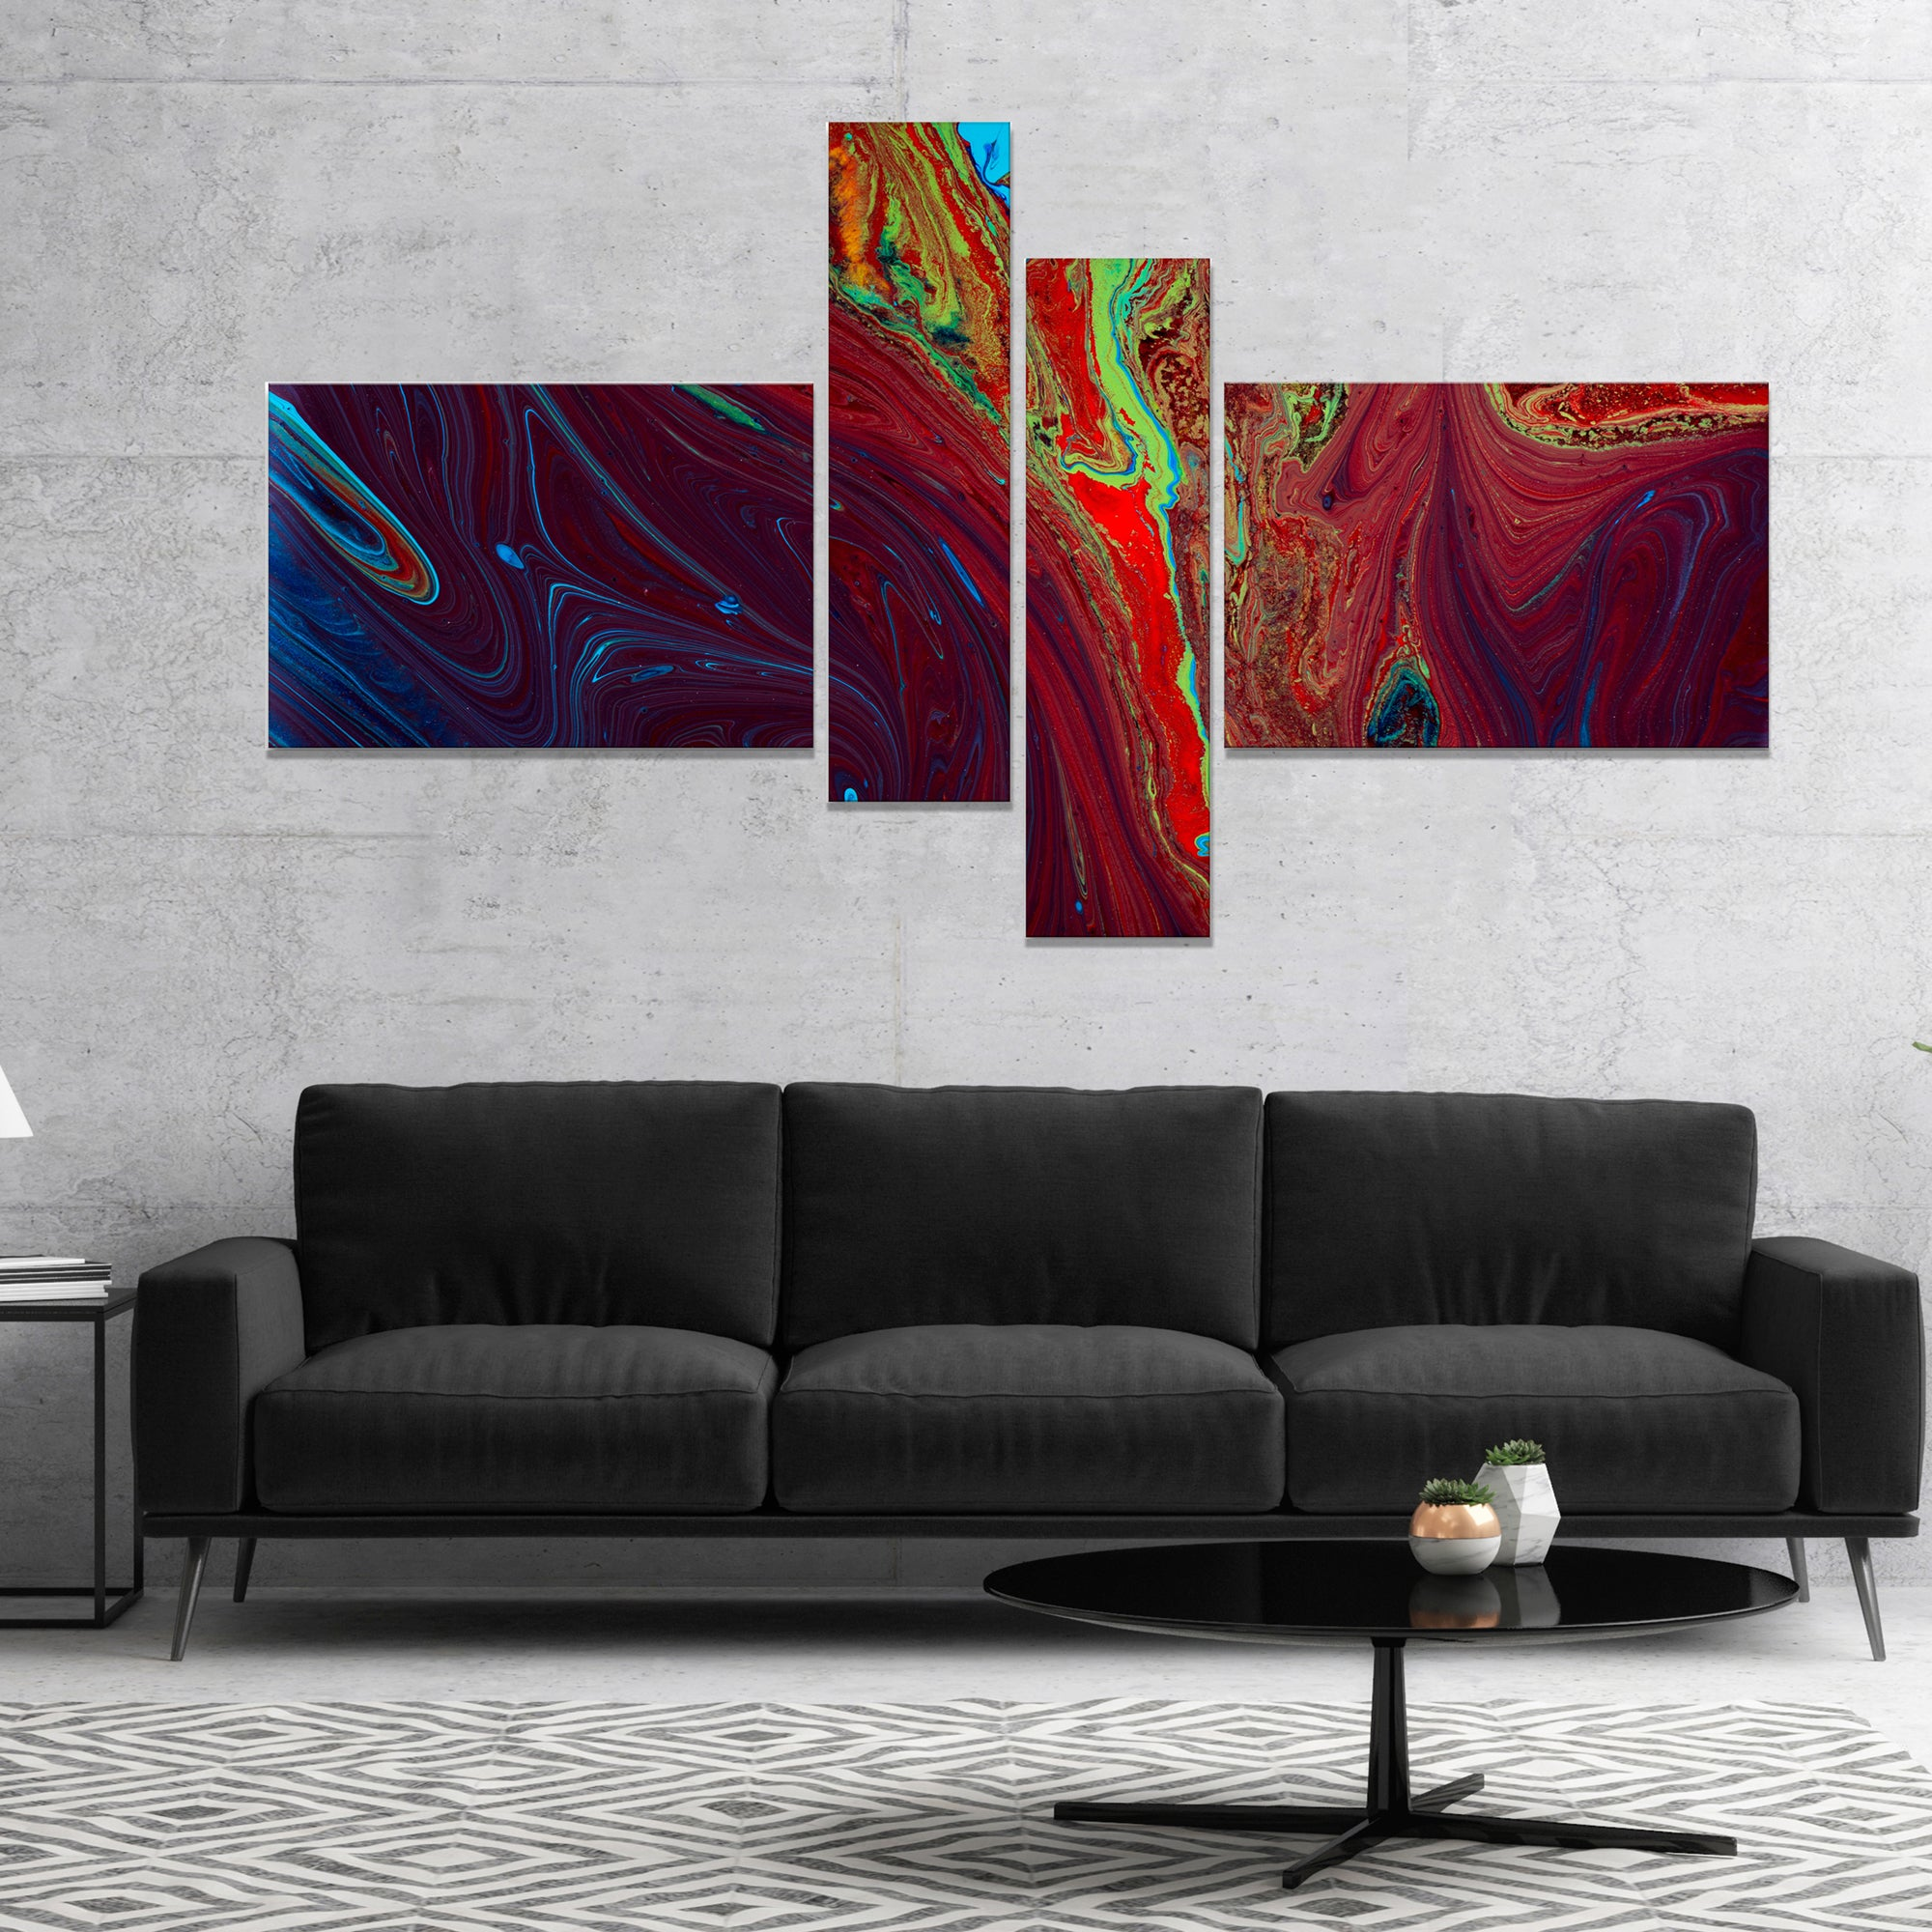 Designart Dark Red Abstract Acrylic Paint Mix Abstract Art On Canvas On Sale Overstock 17013475